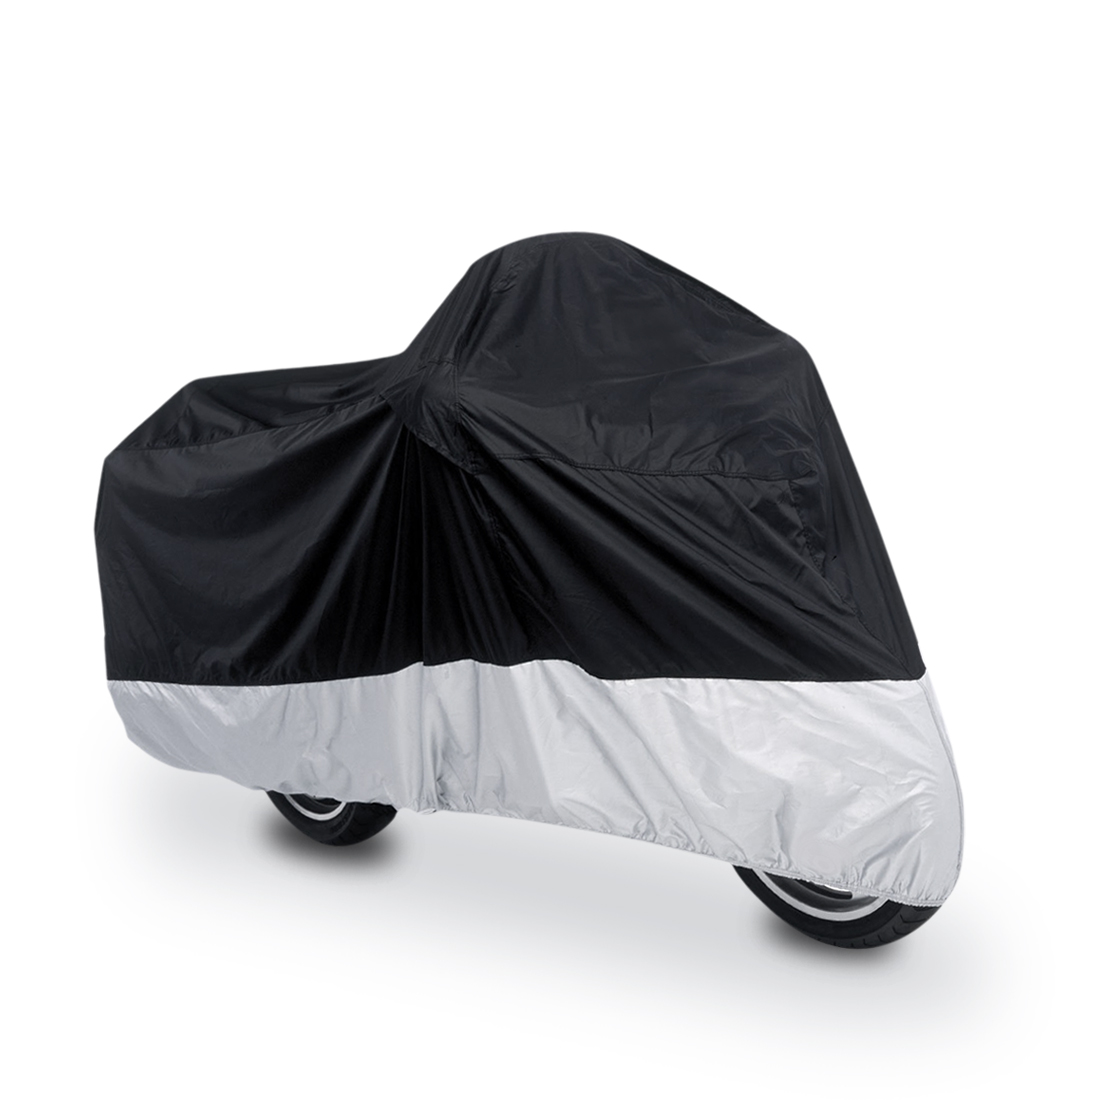 XXXL Outdoor Black+Silver Motorcycle Cover For GSXR 600 750 1000 TL1000R